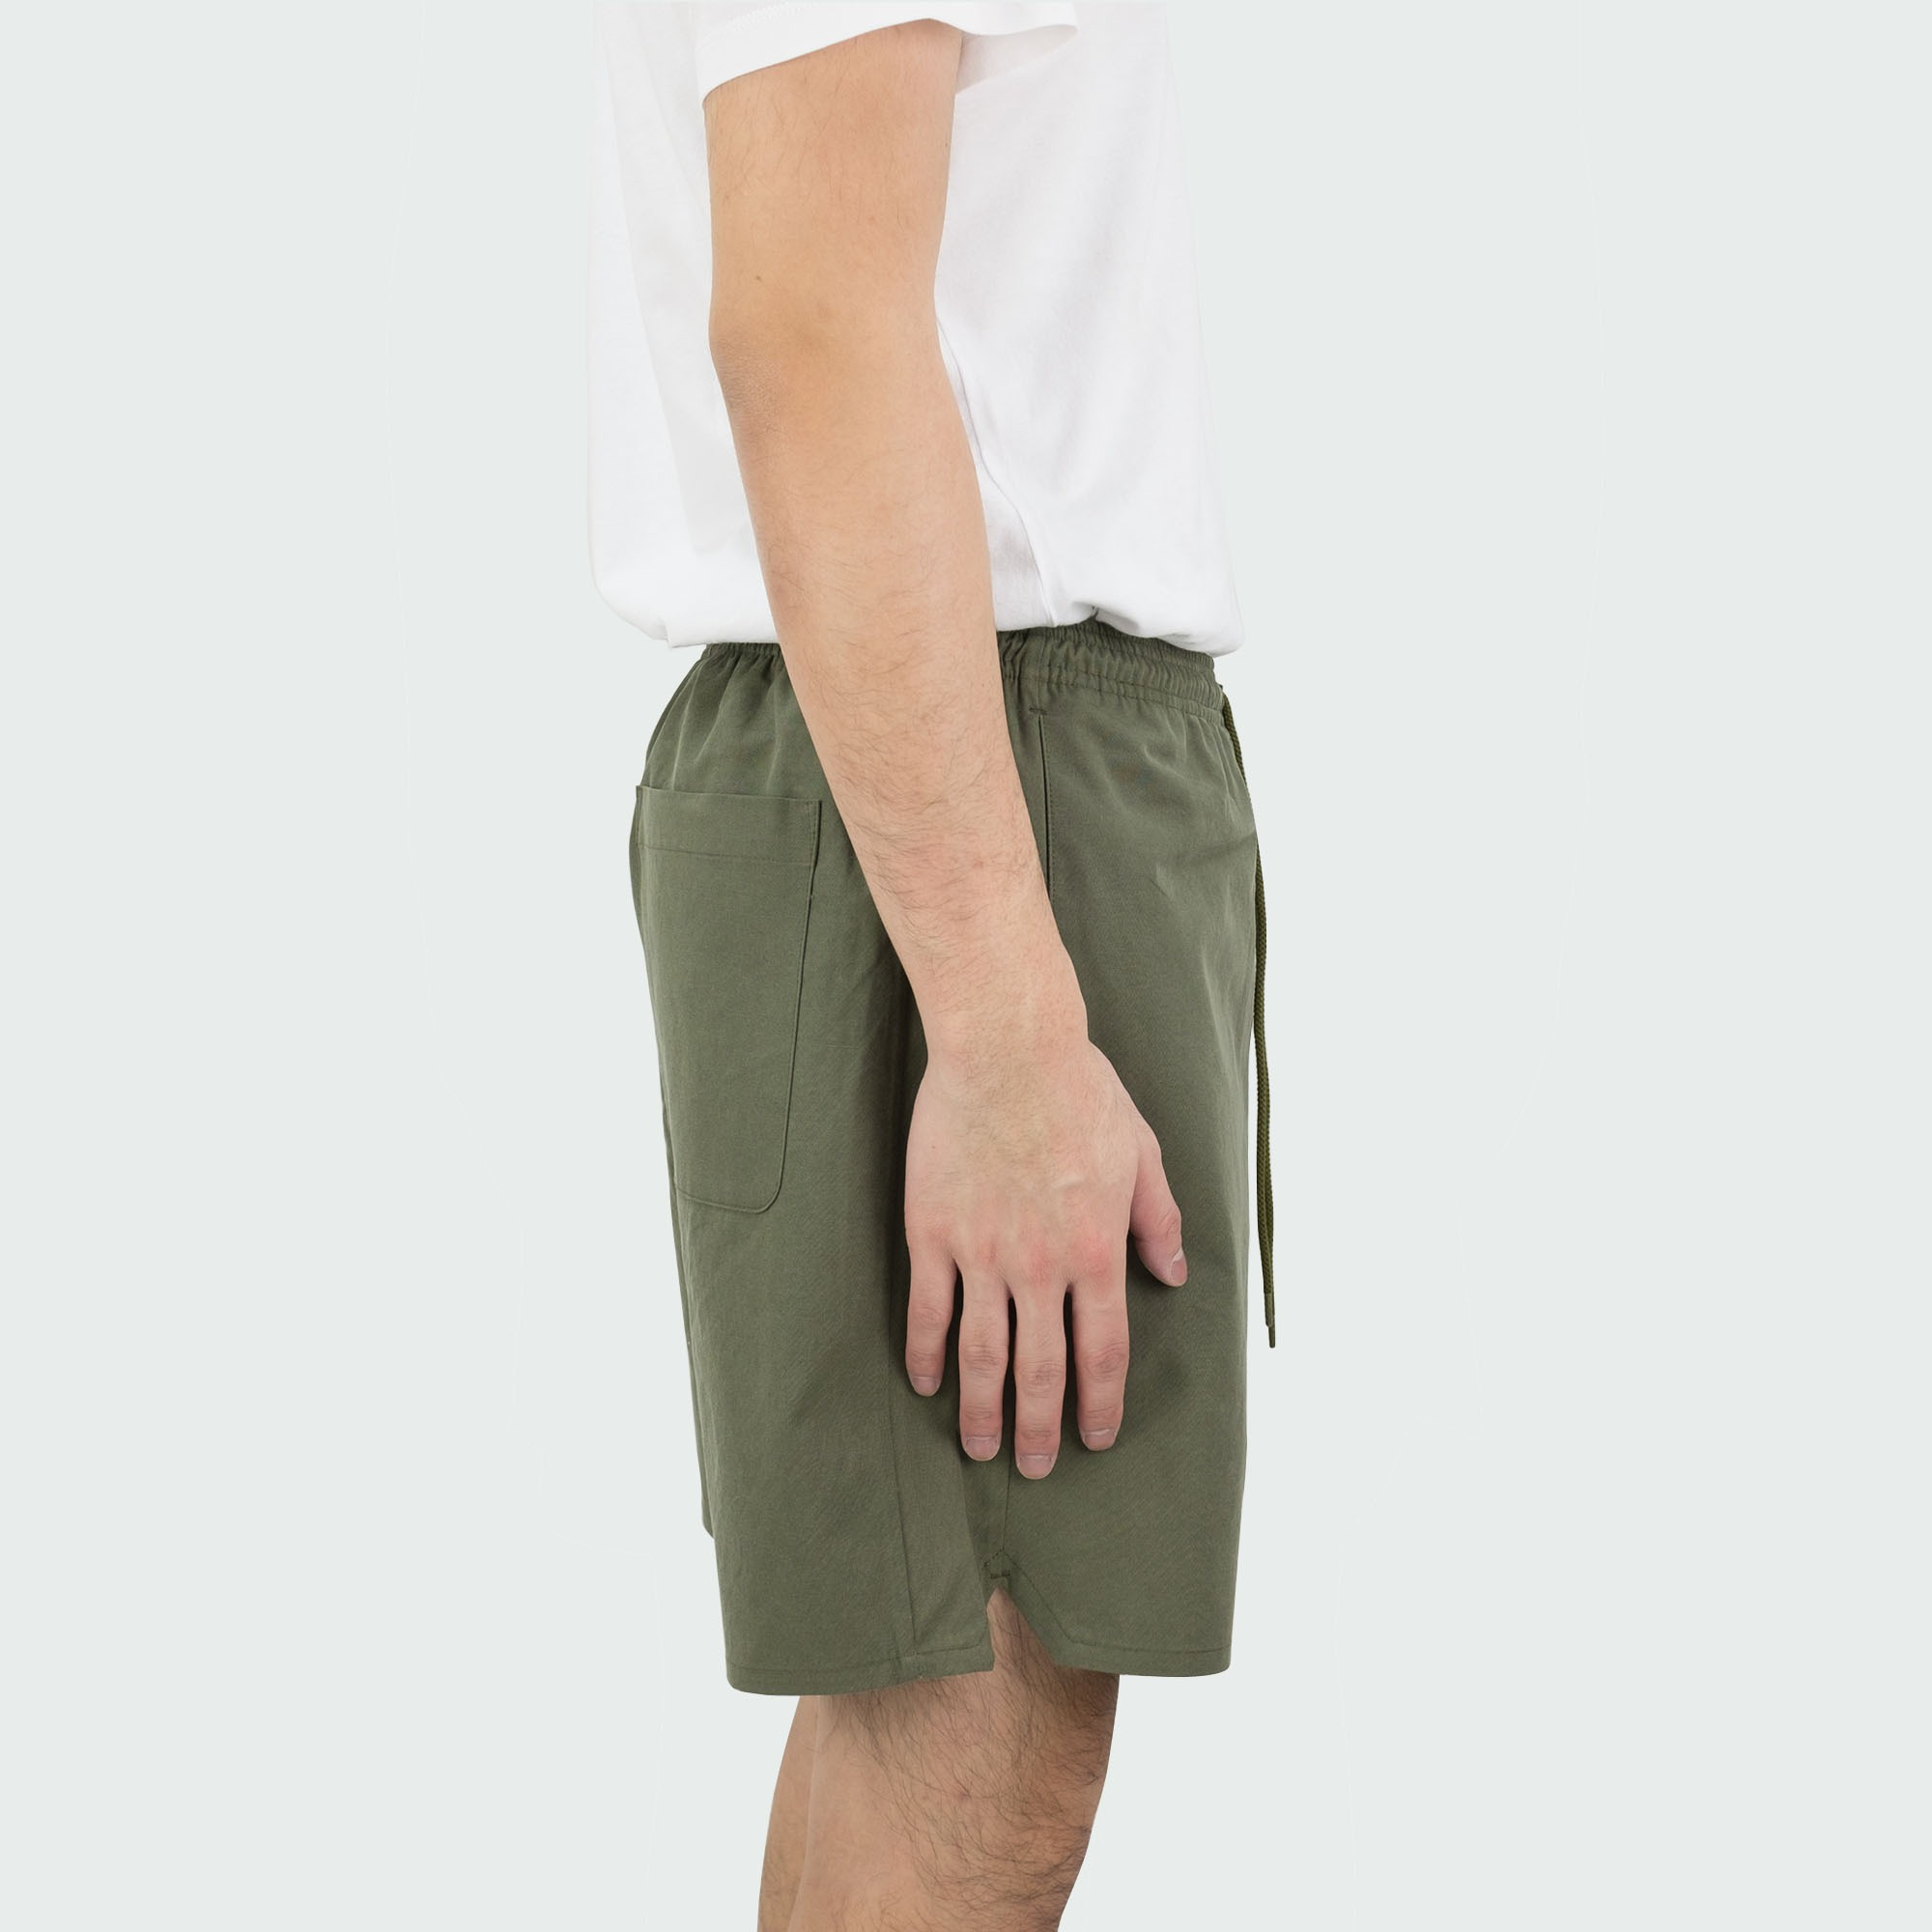 Sulfur Dyed Nidom Training Shorts Khaki 3